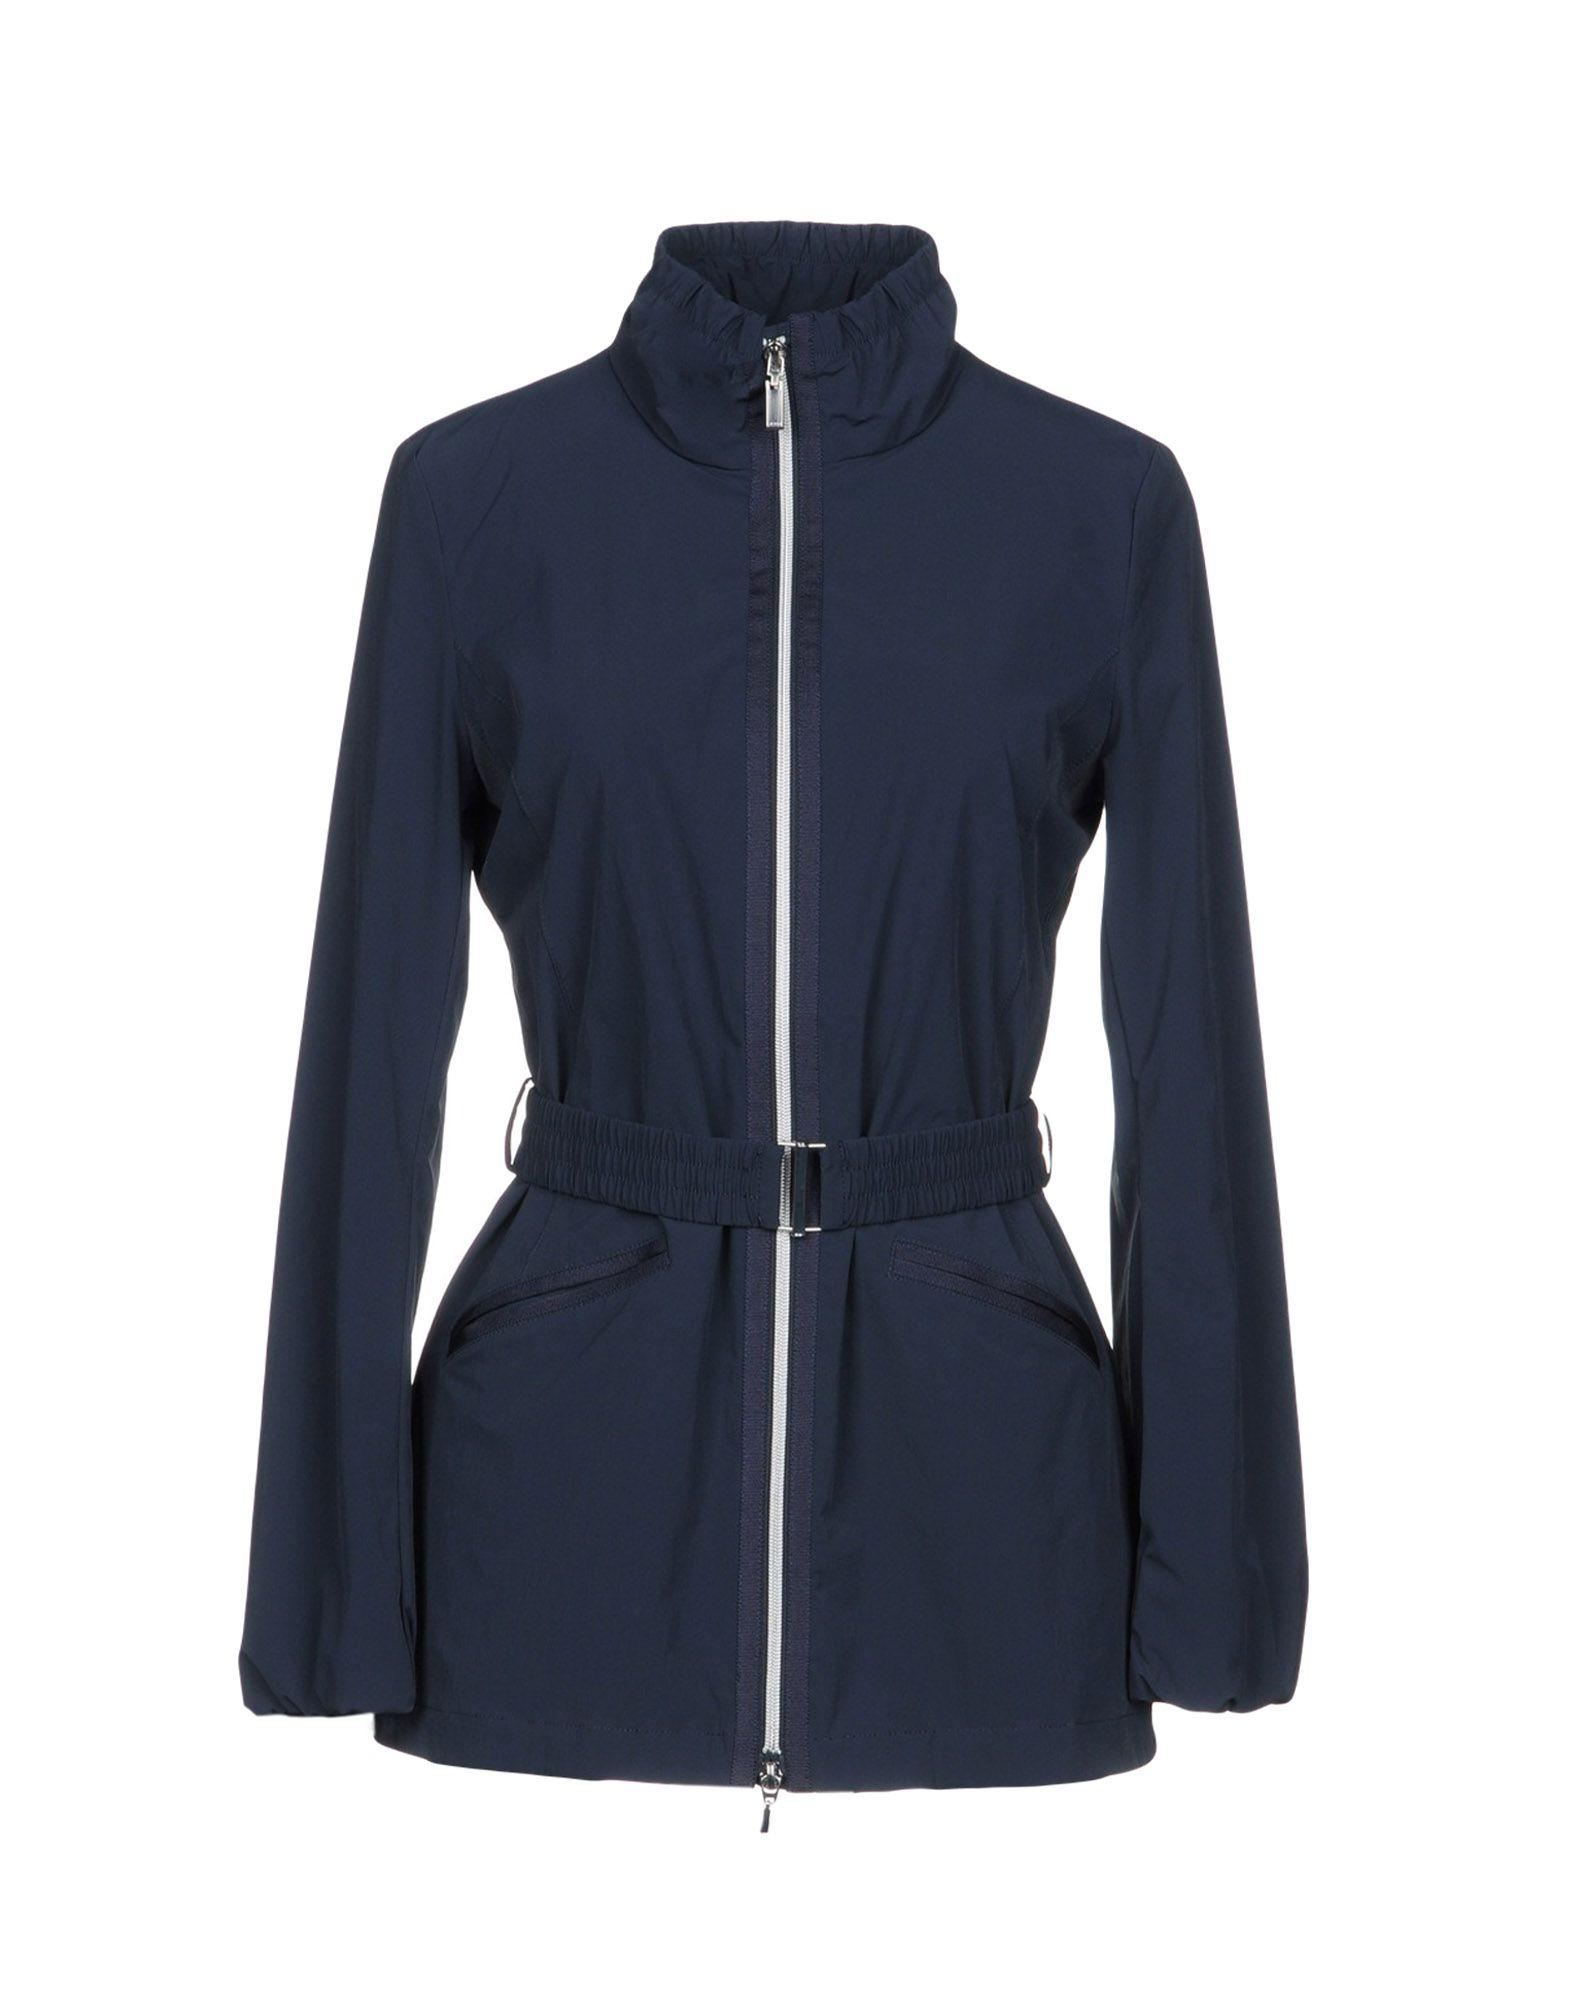 Geox Jackets In Dark Blue